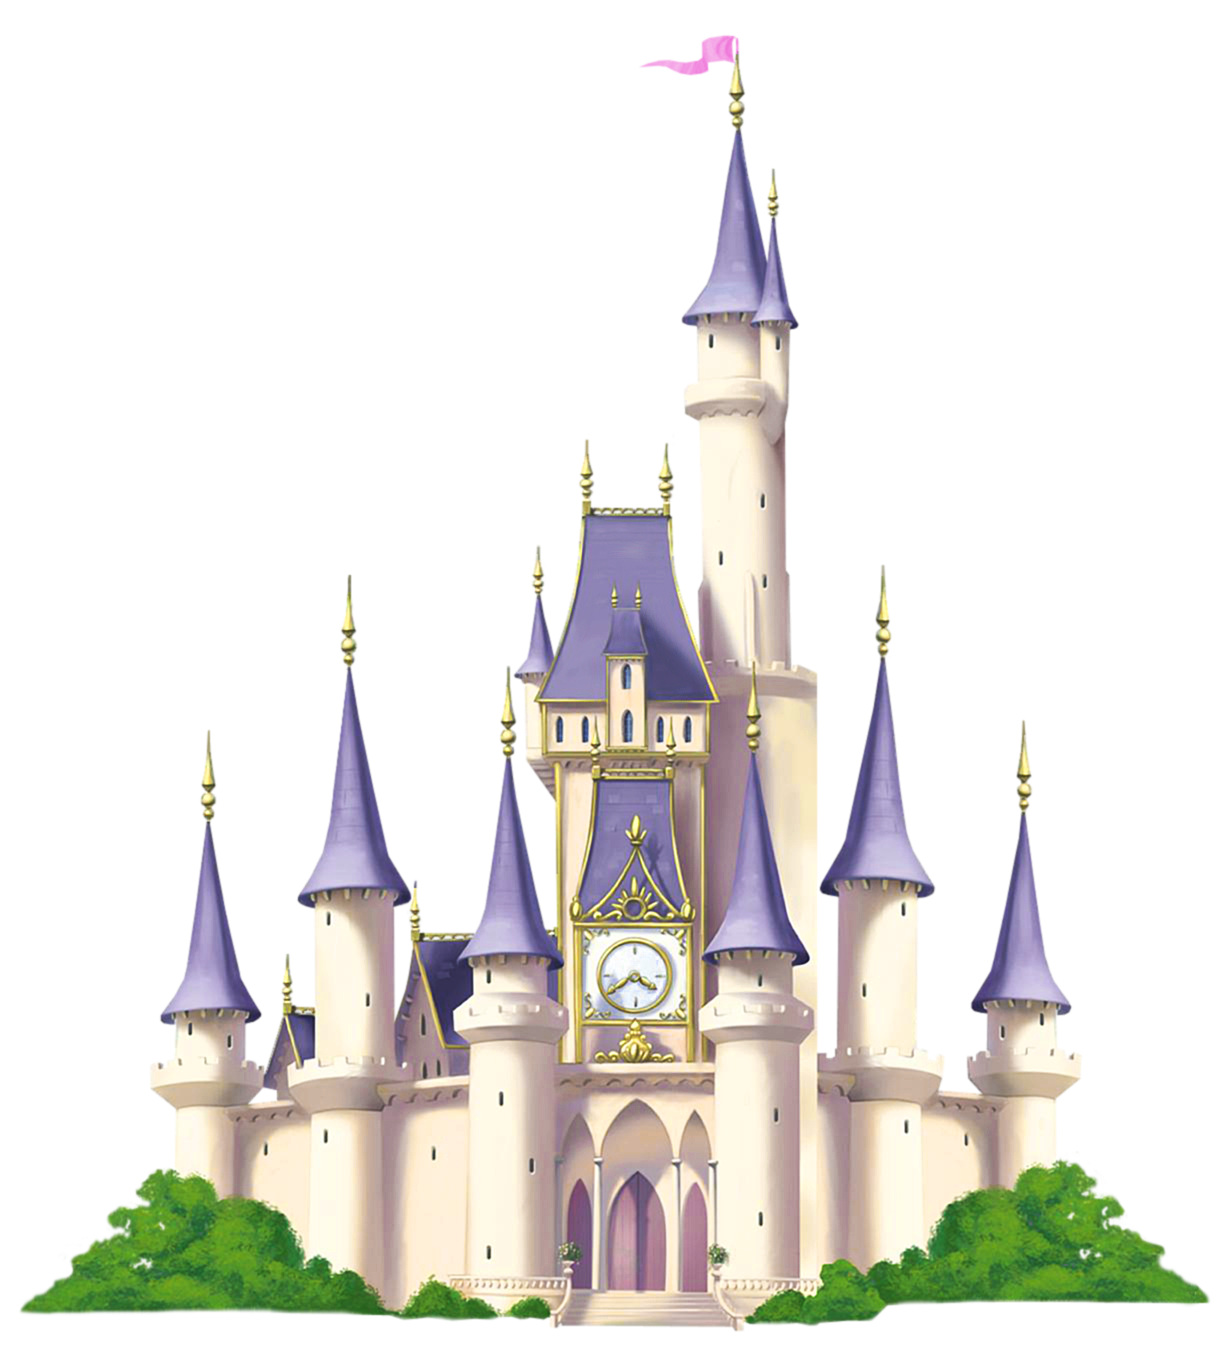 Transparent png picture gallery. Palace clipart brick castle